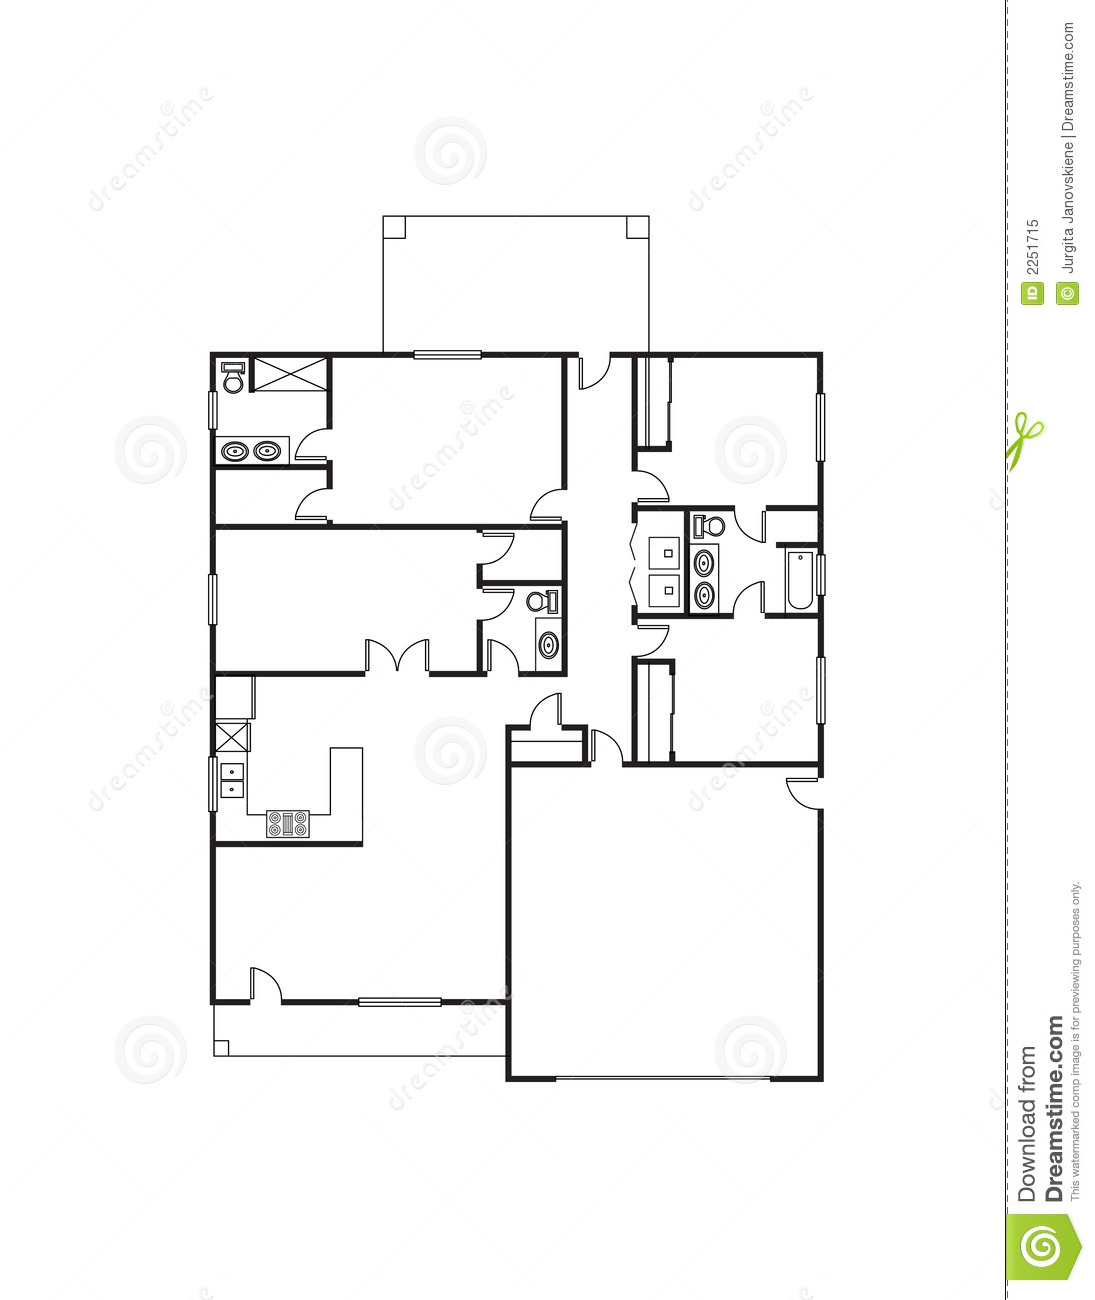 House Plan Royalty Free Stock Photo